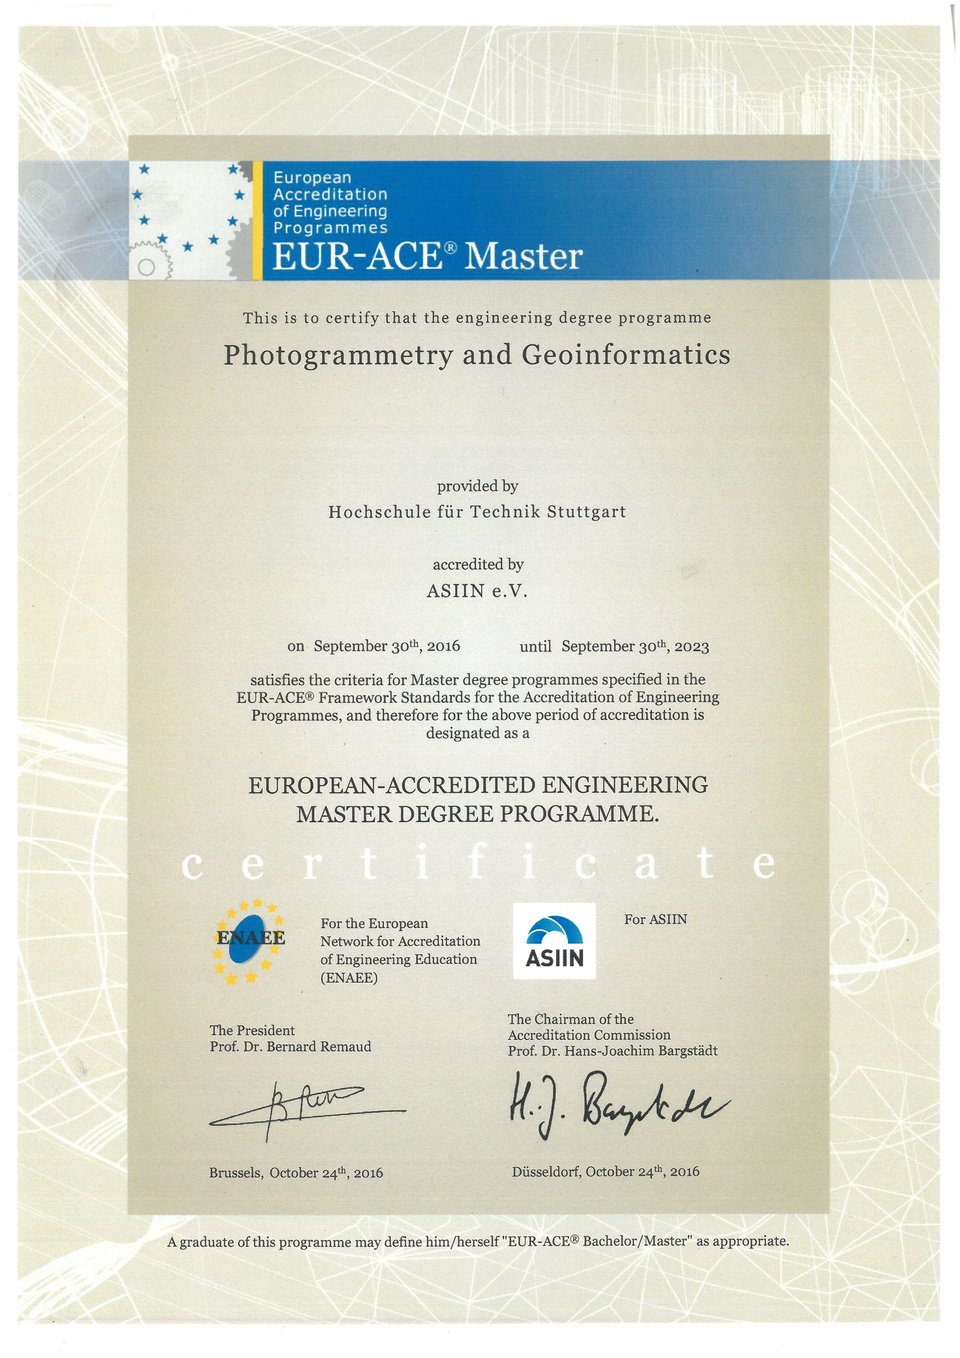 Akkreditierungsurkunde EURACE Master Photogrammetry and Geoinformatics